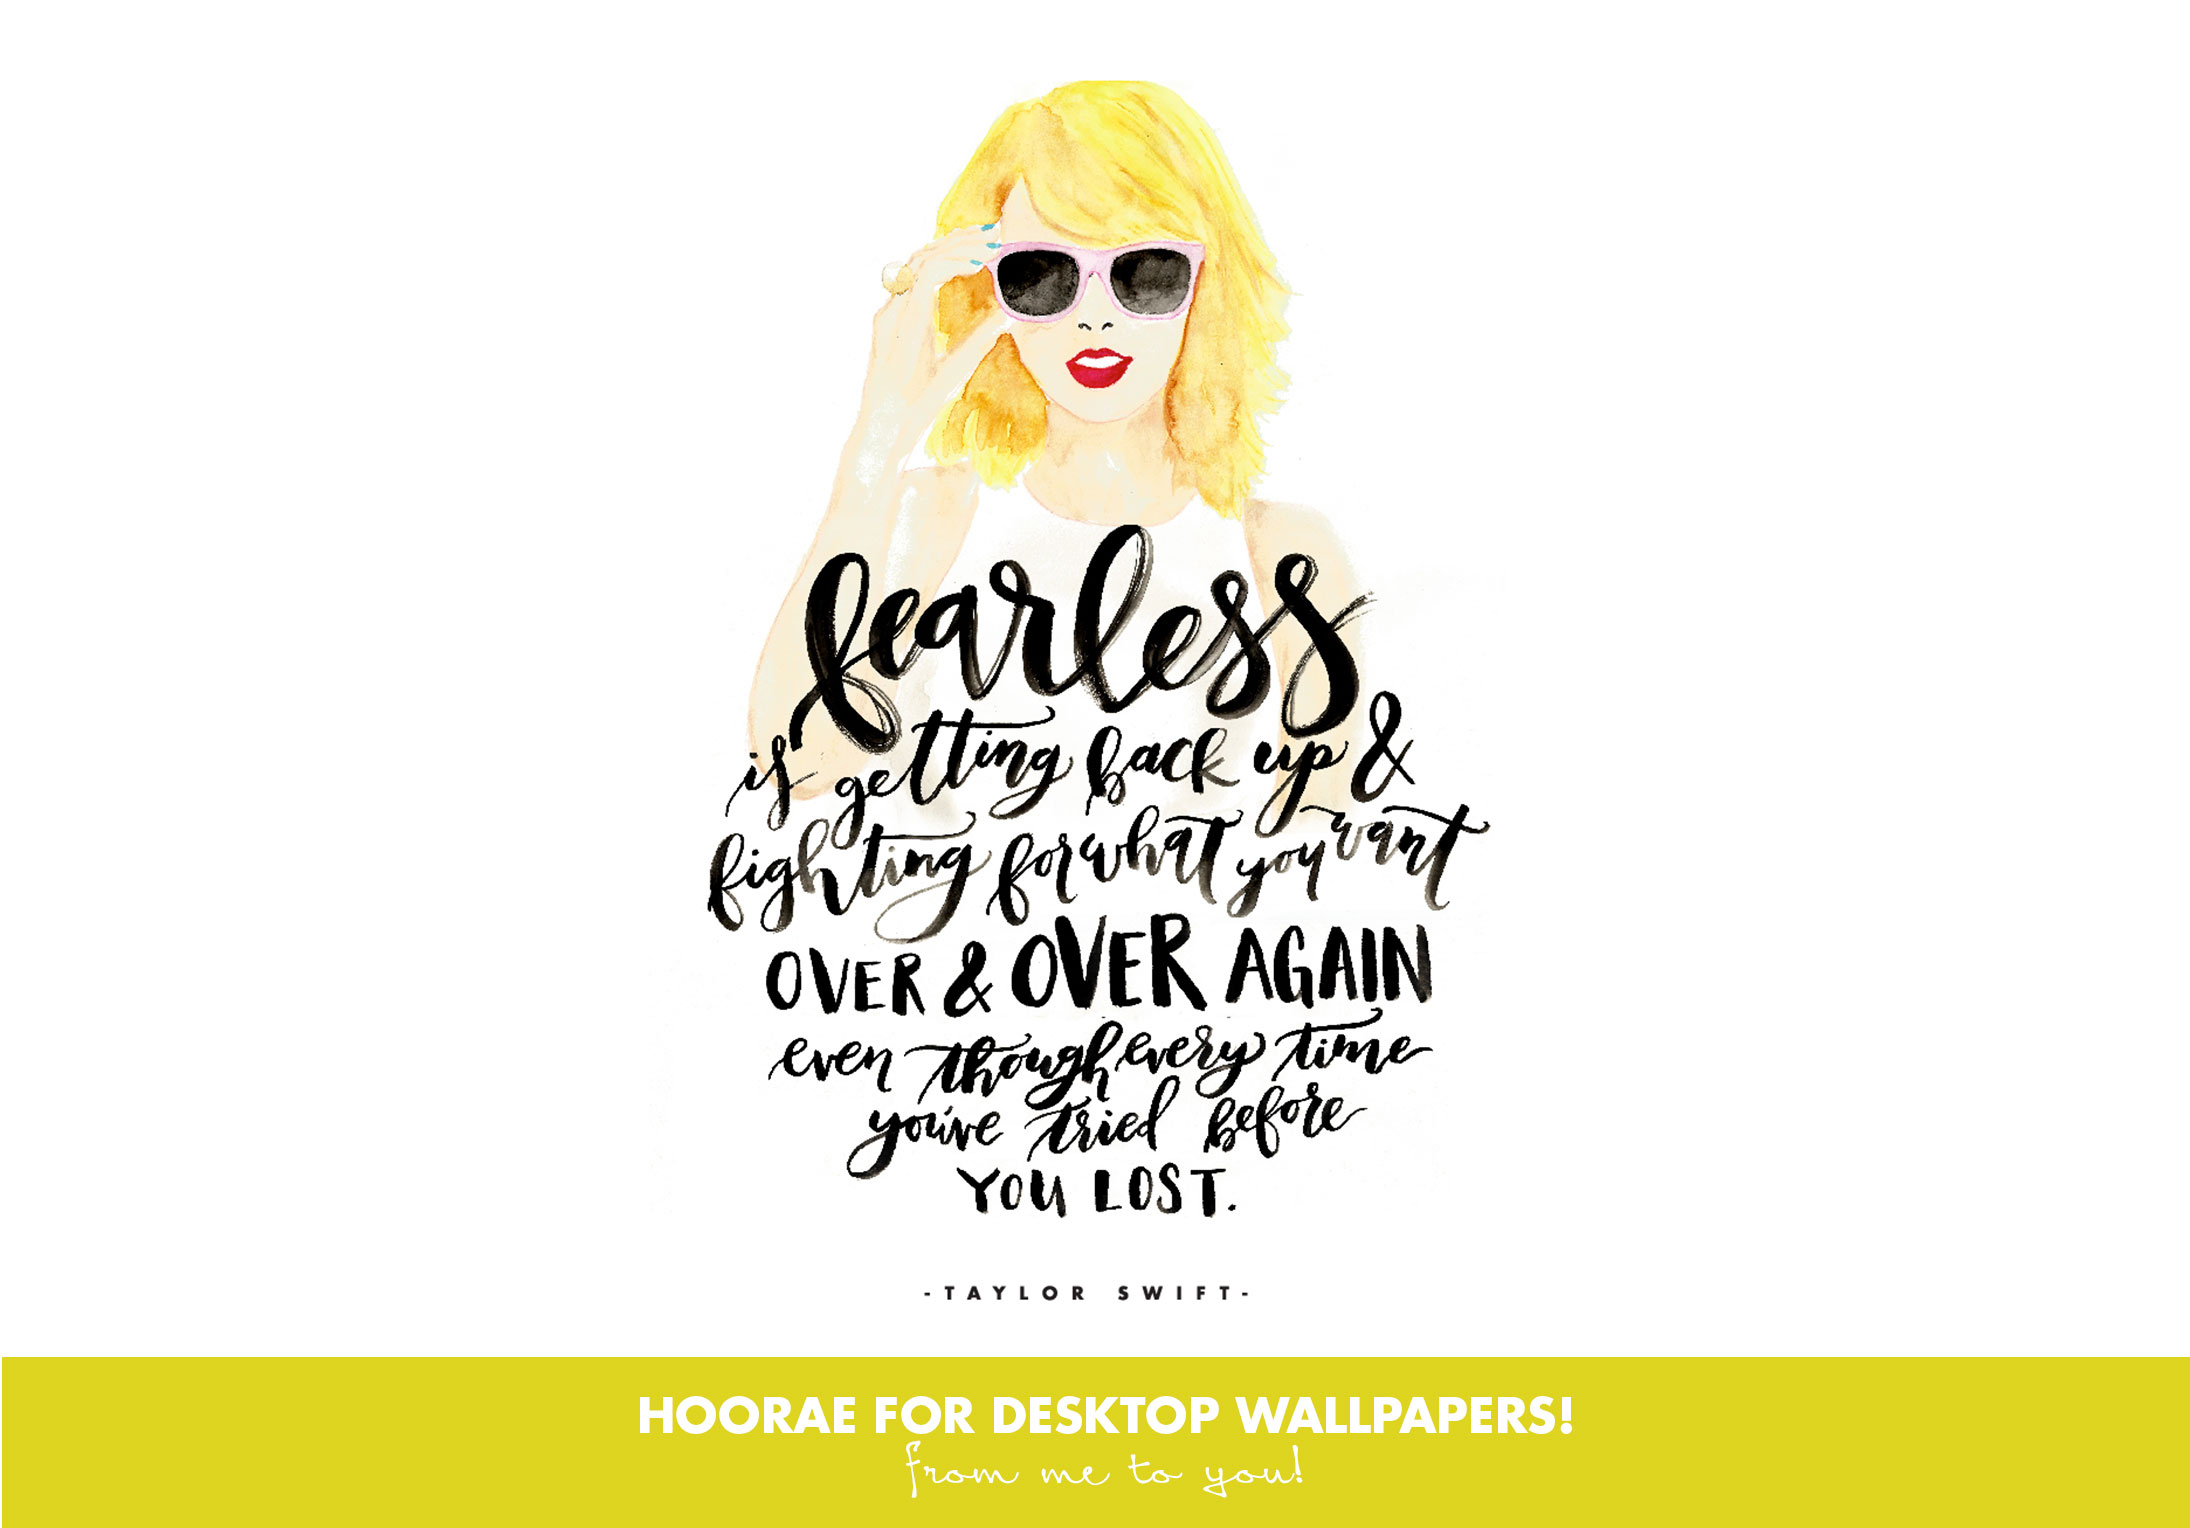 Free Desktop Downloads 3 Taylor Swift Quotes To Make You Fiercely